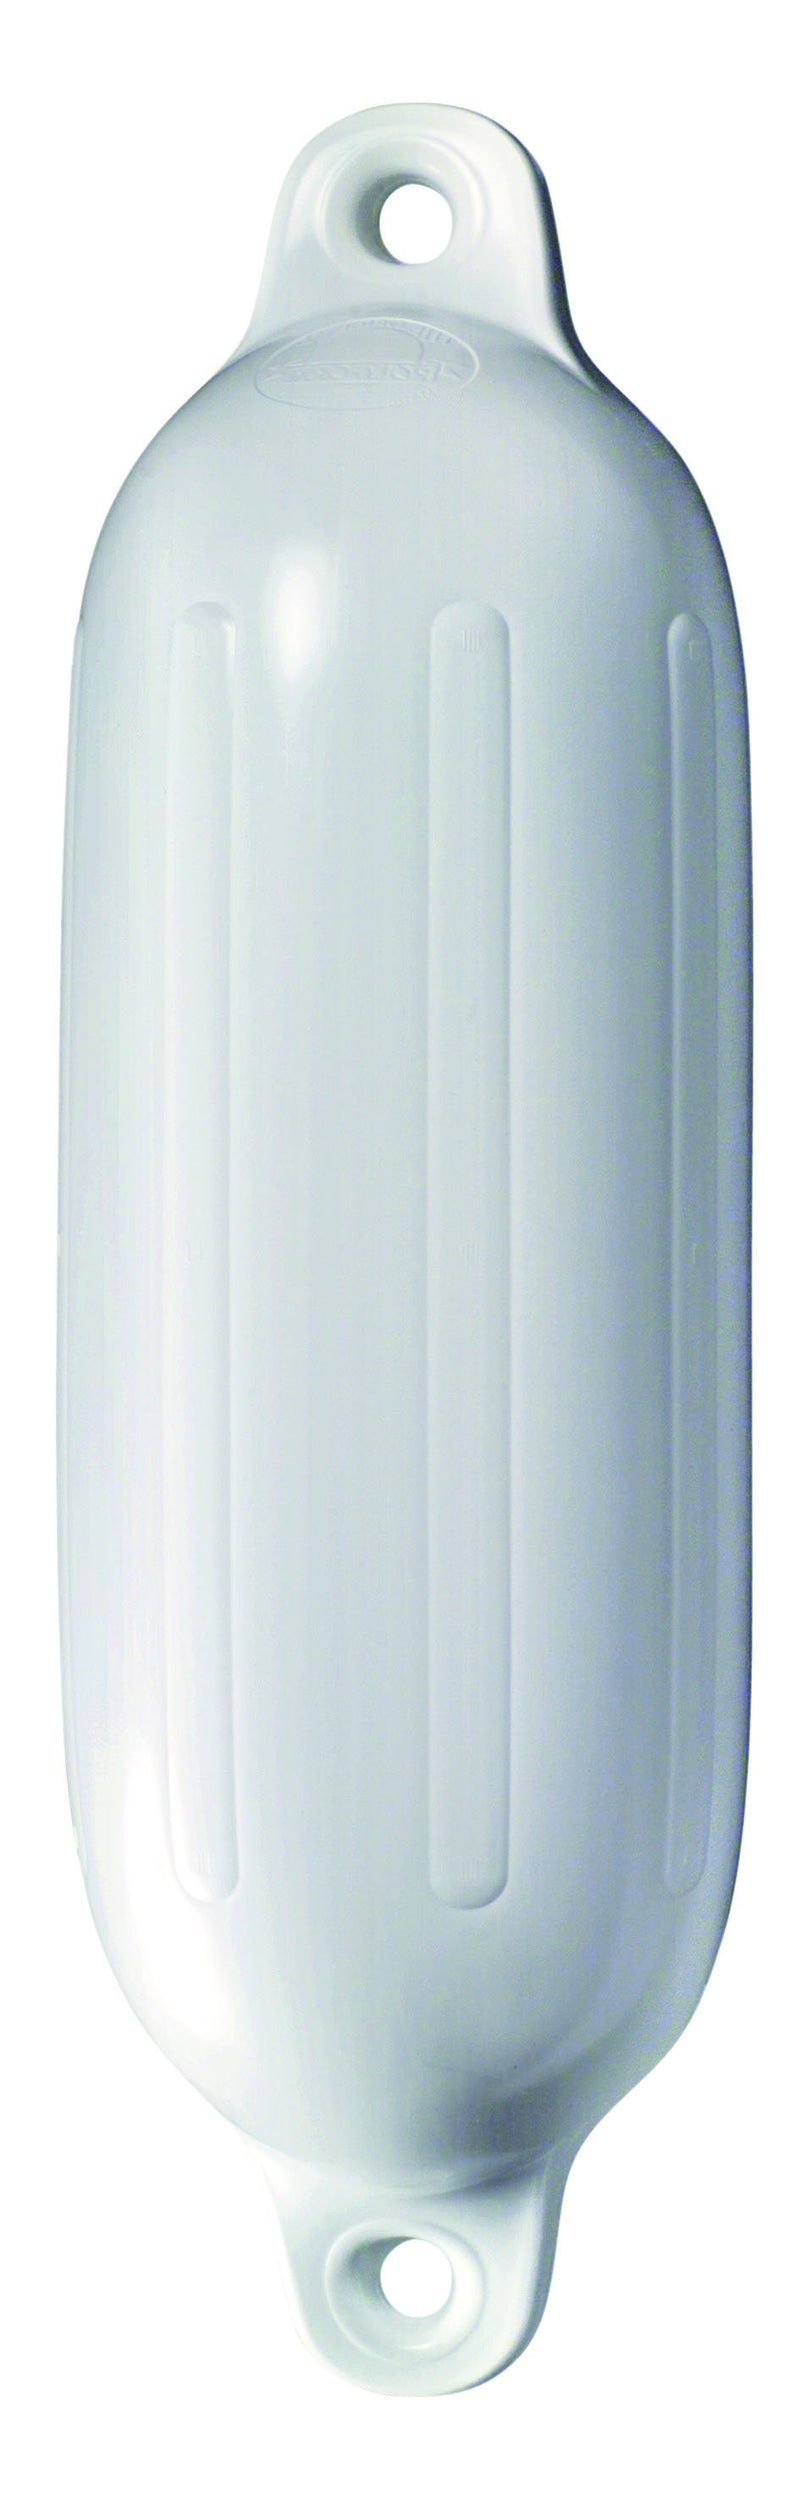 G5 Polyform Fender 705mm(L) x 215mm(D)